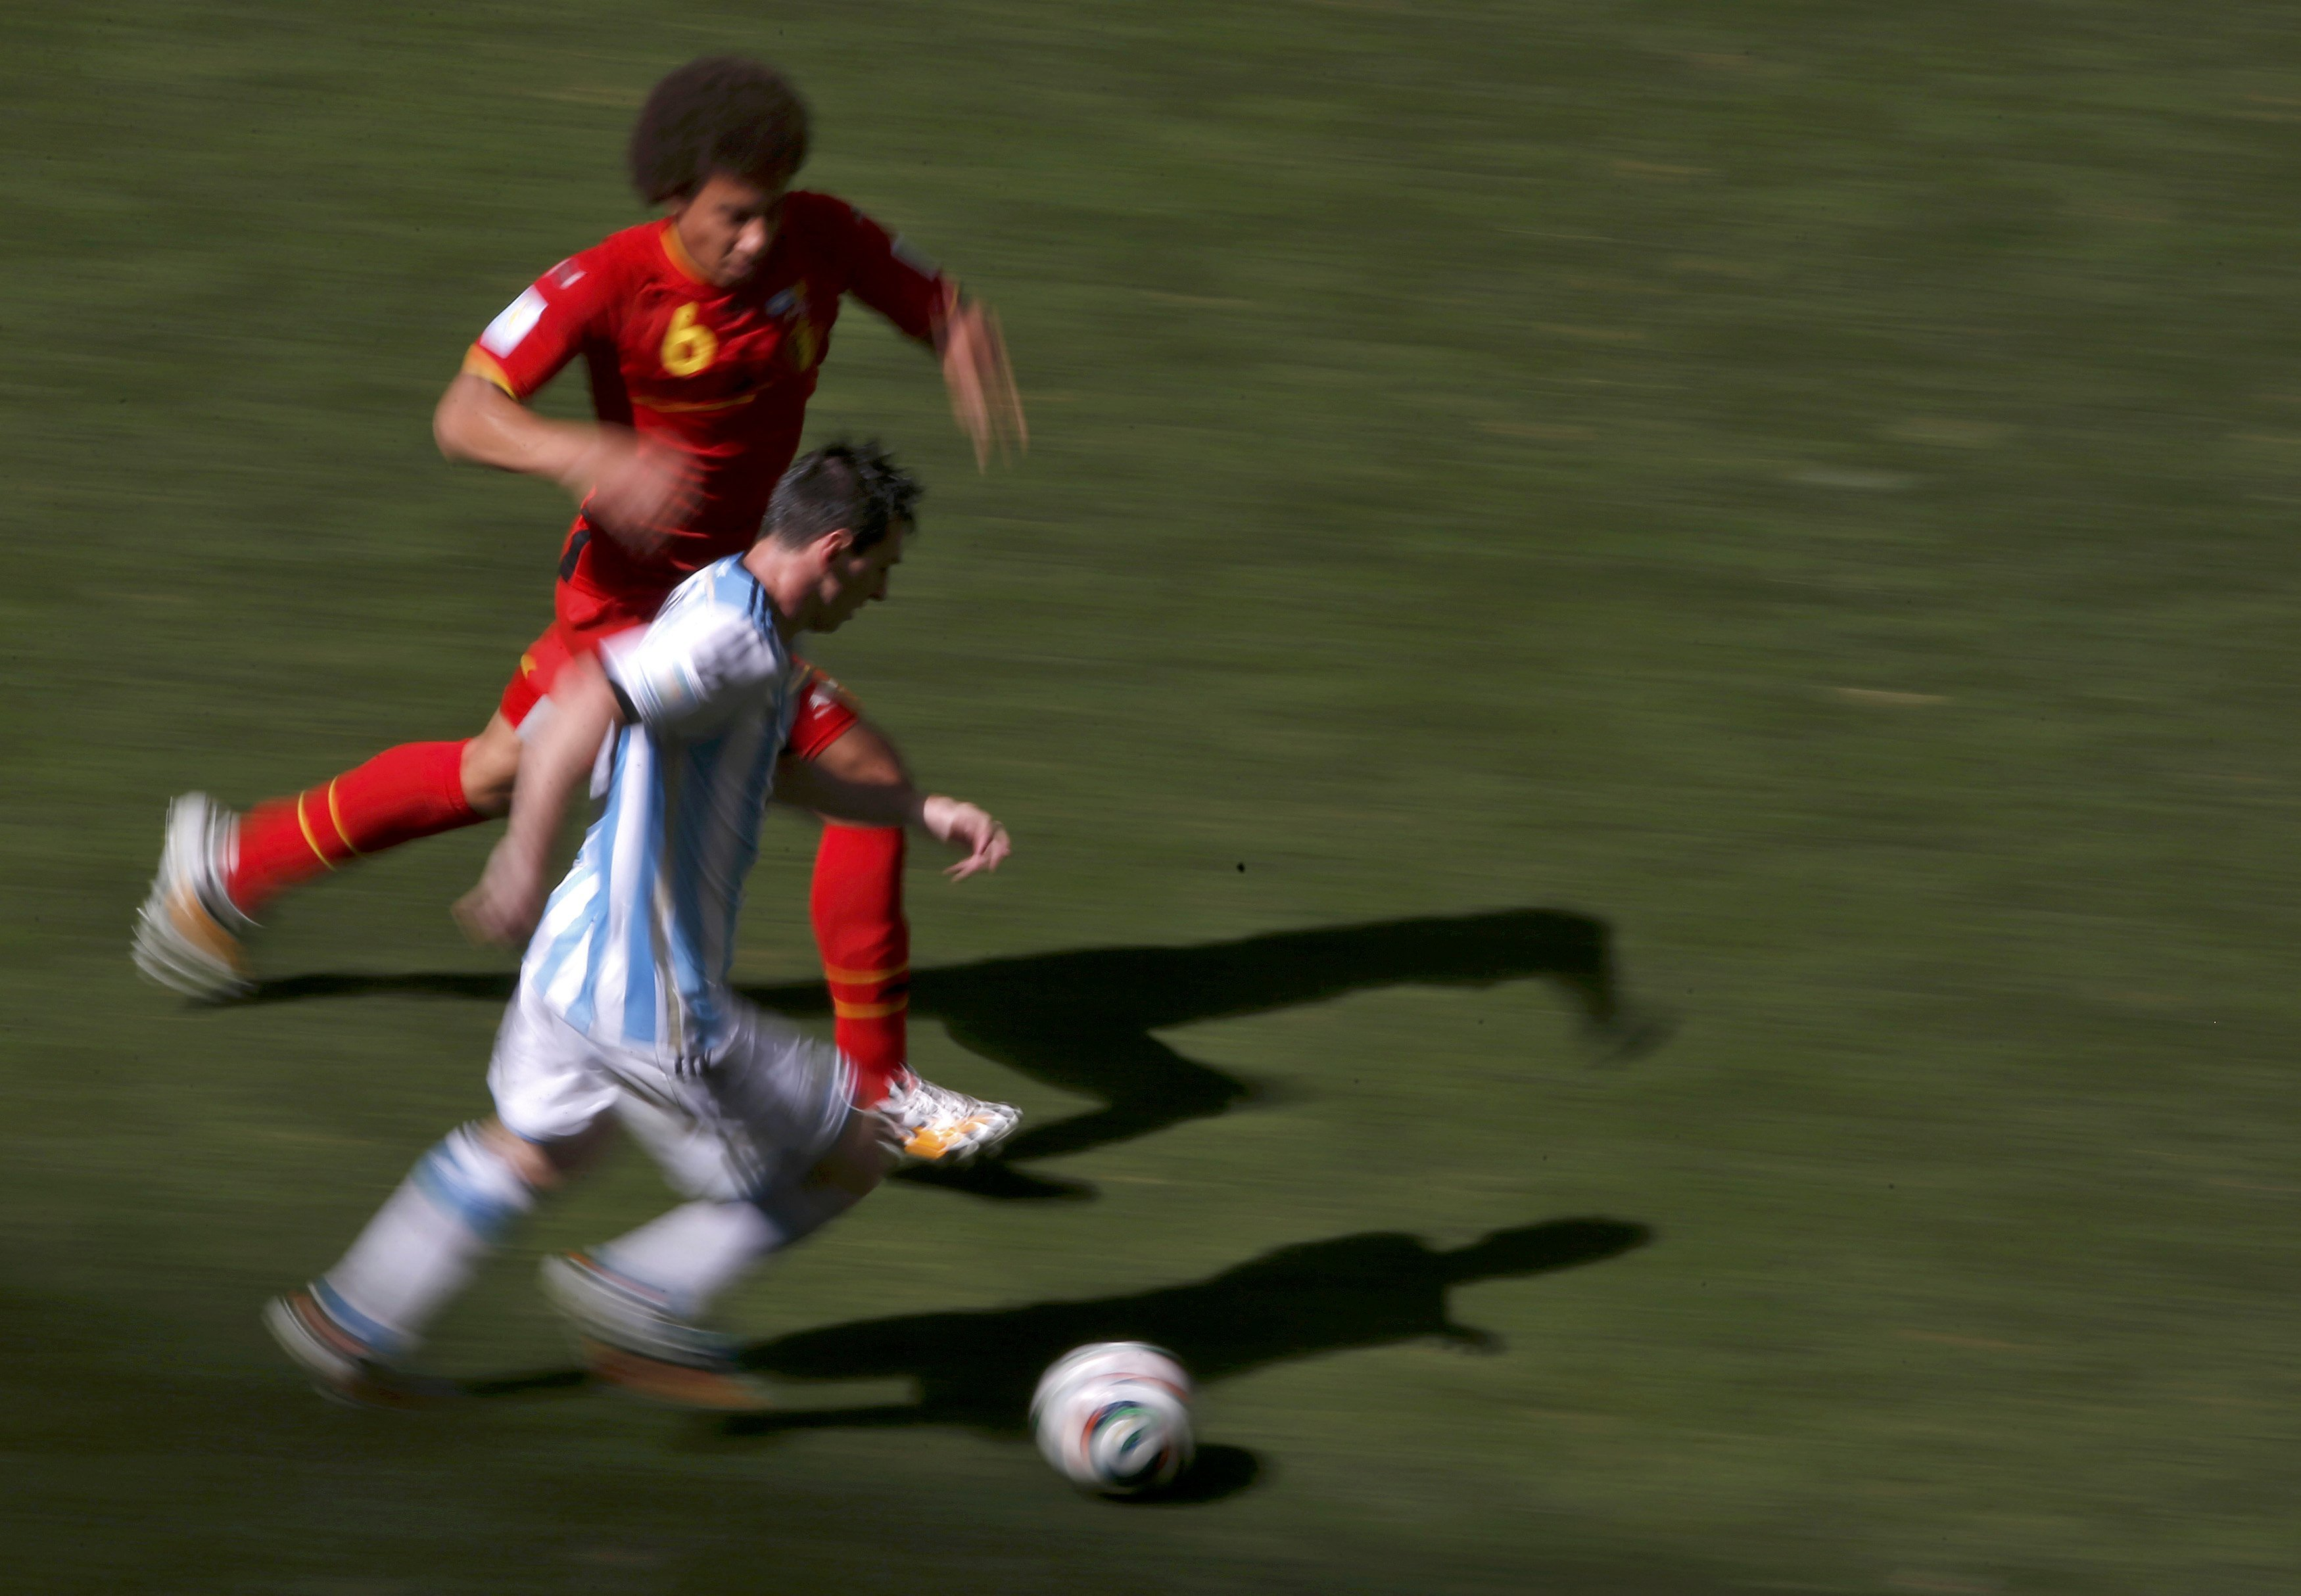 Argentina's Lionel Messi chases the ball with Belgium's Axel Witsel during their 2014 World Cup quarter-finals at the Brasilia national stadium in Brasilia on July 5, 2014.